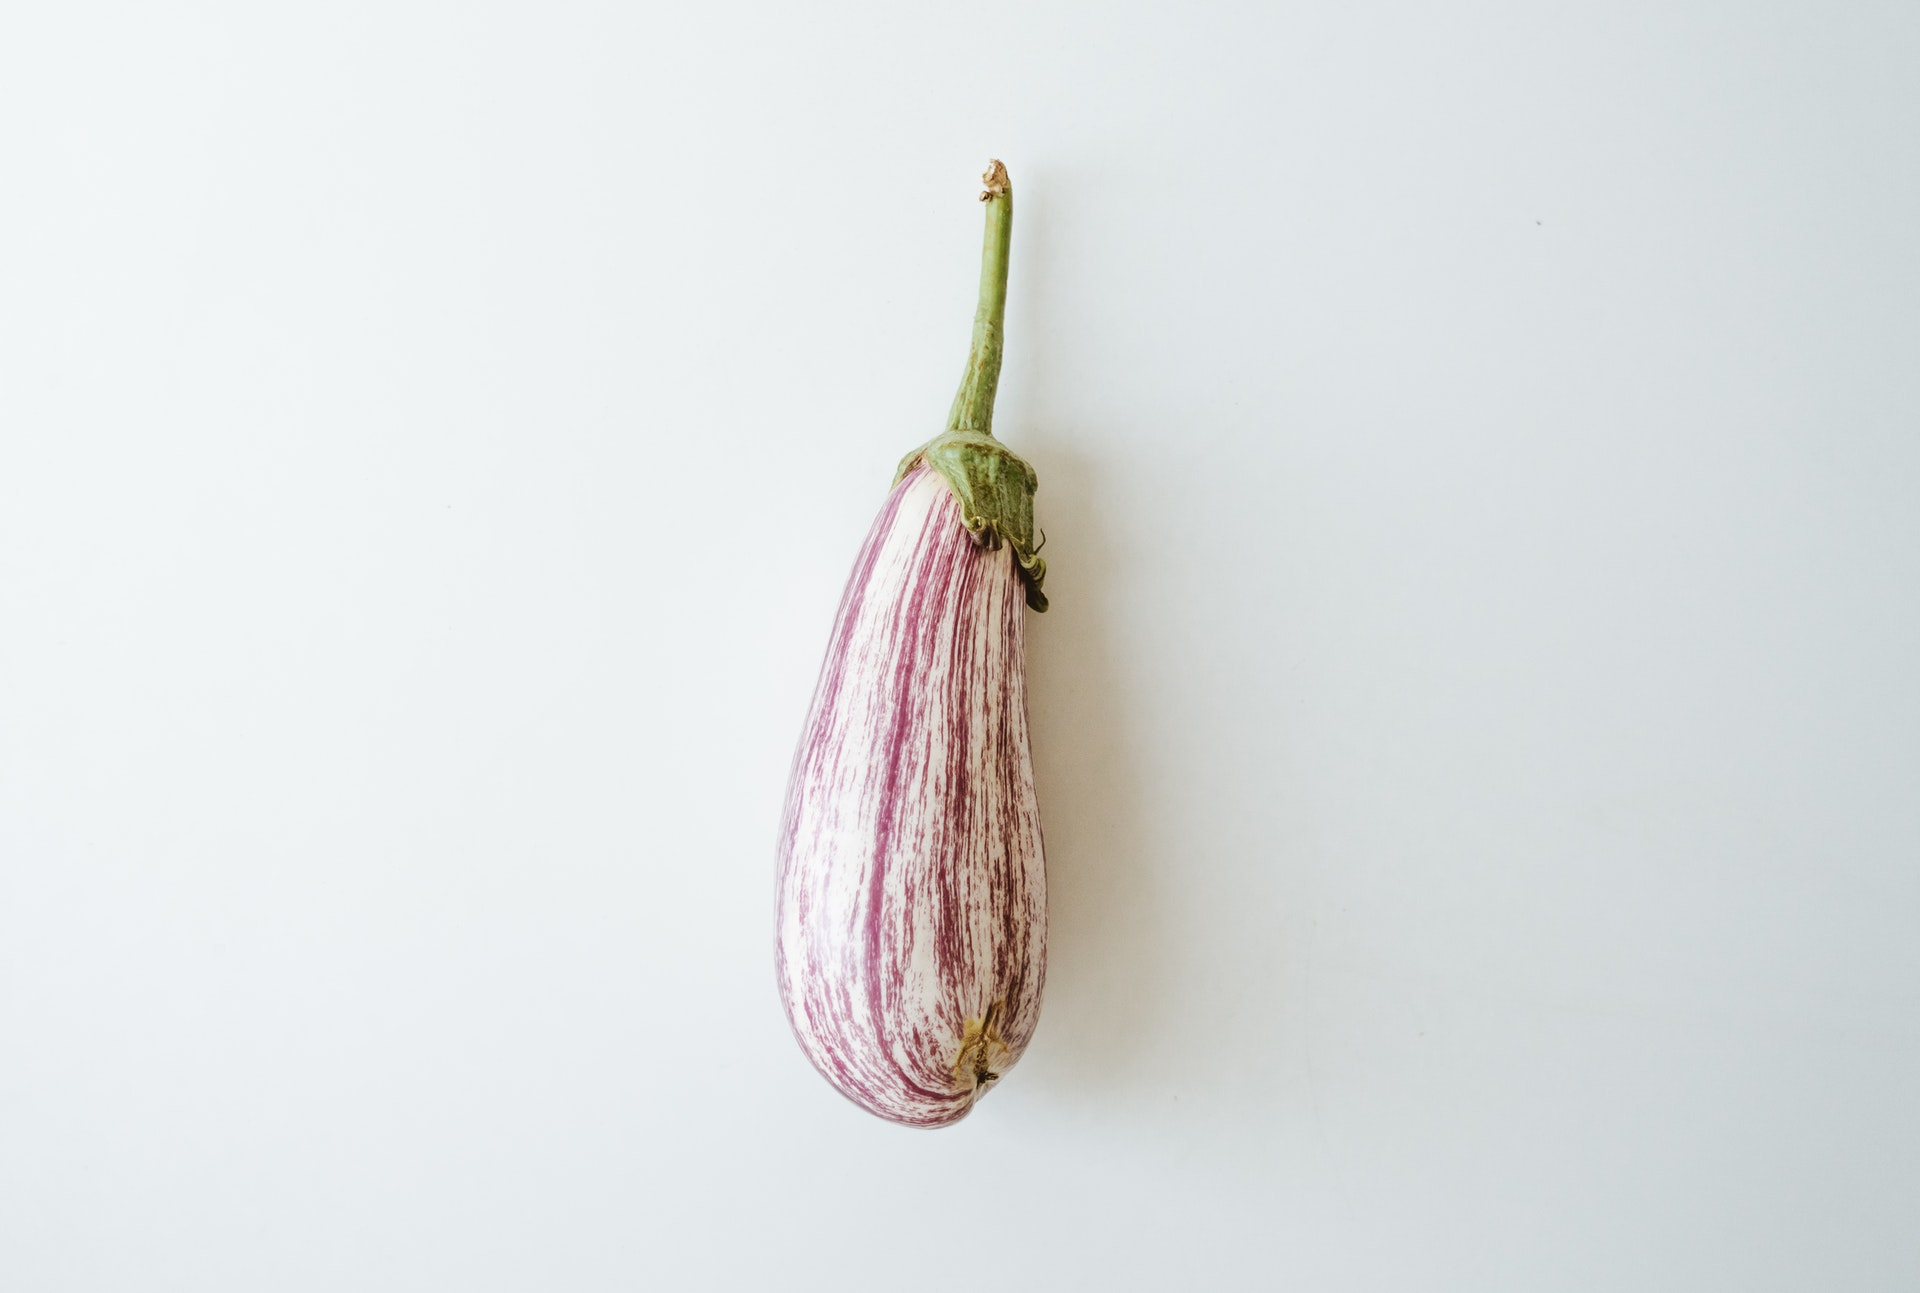 eggplant-food-vegetable-1340856.jpg